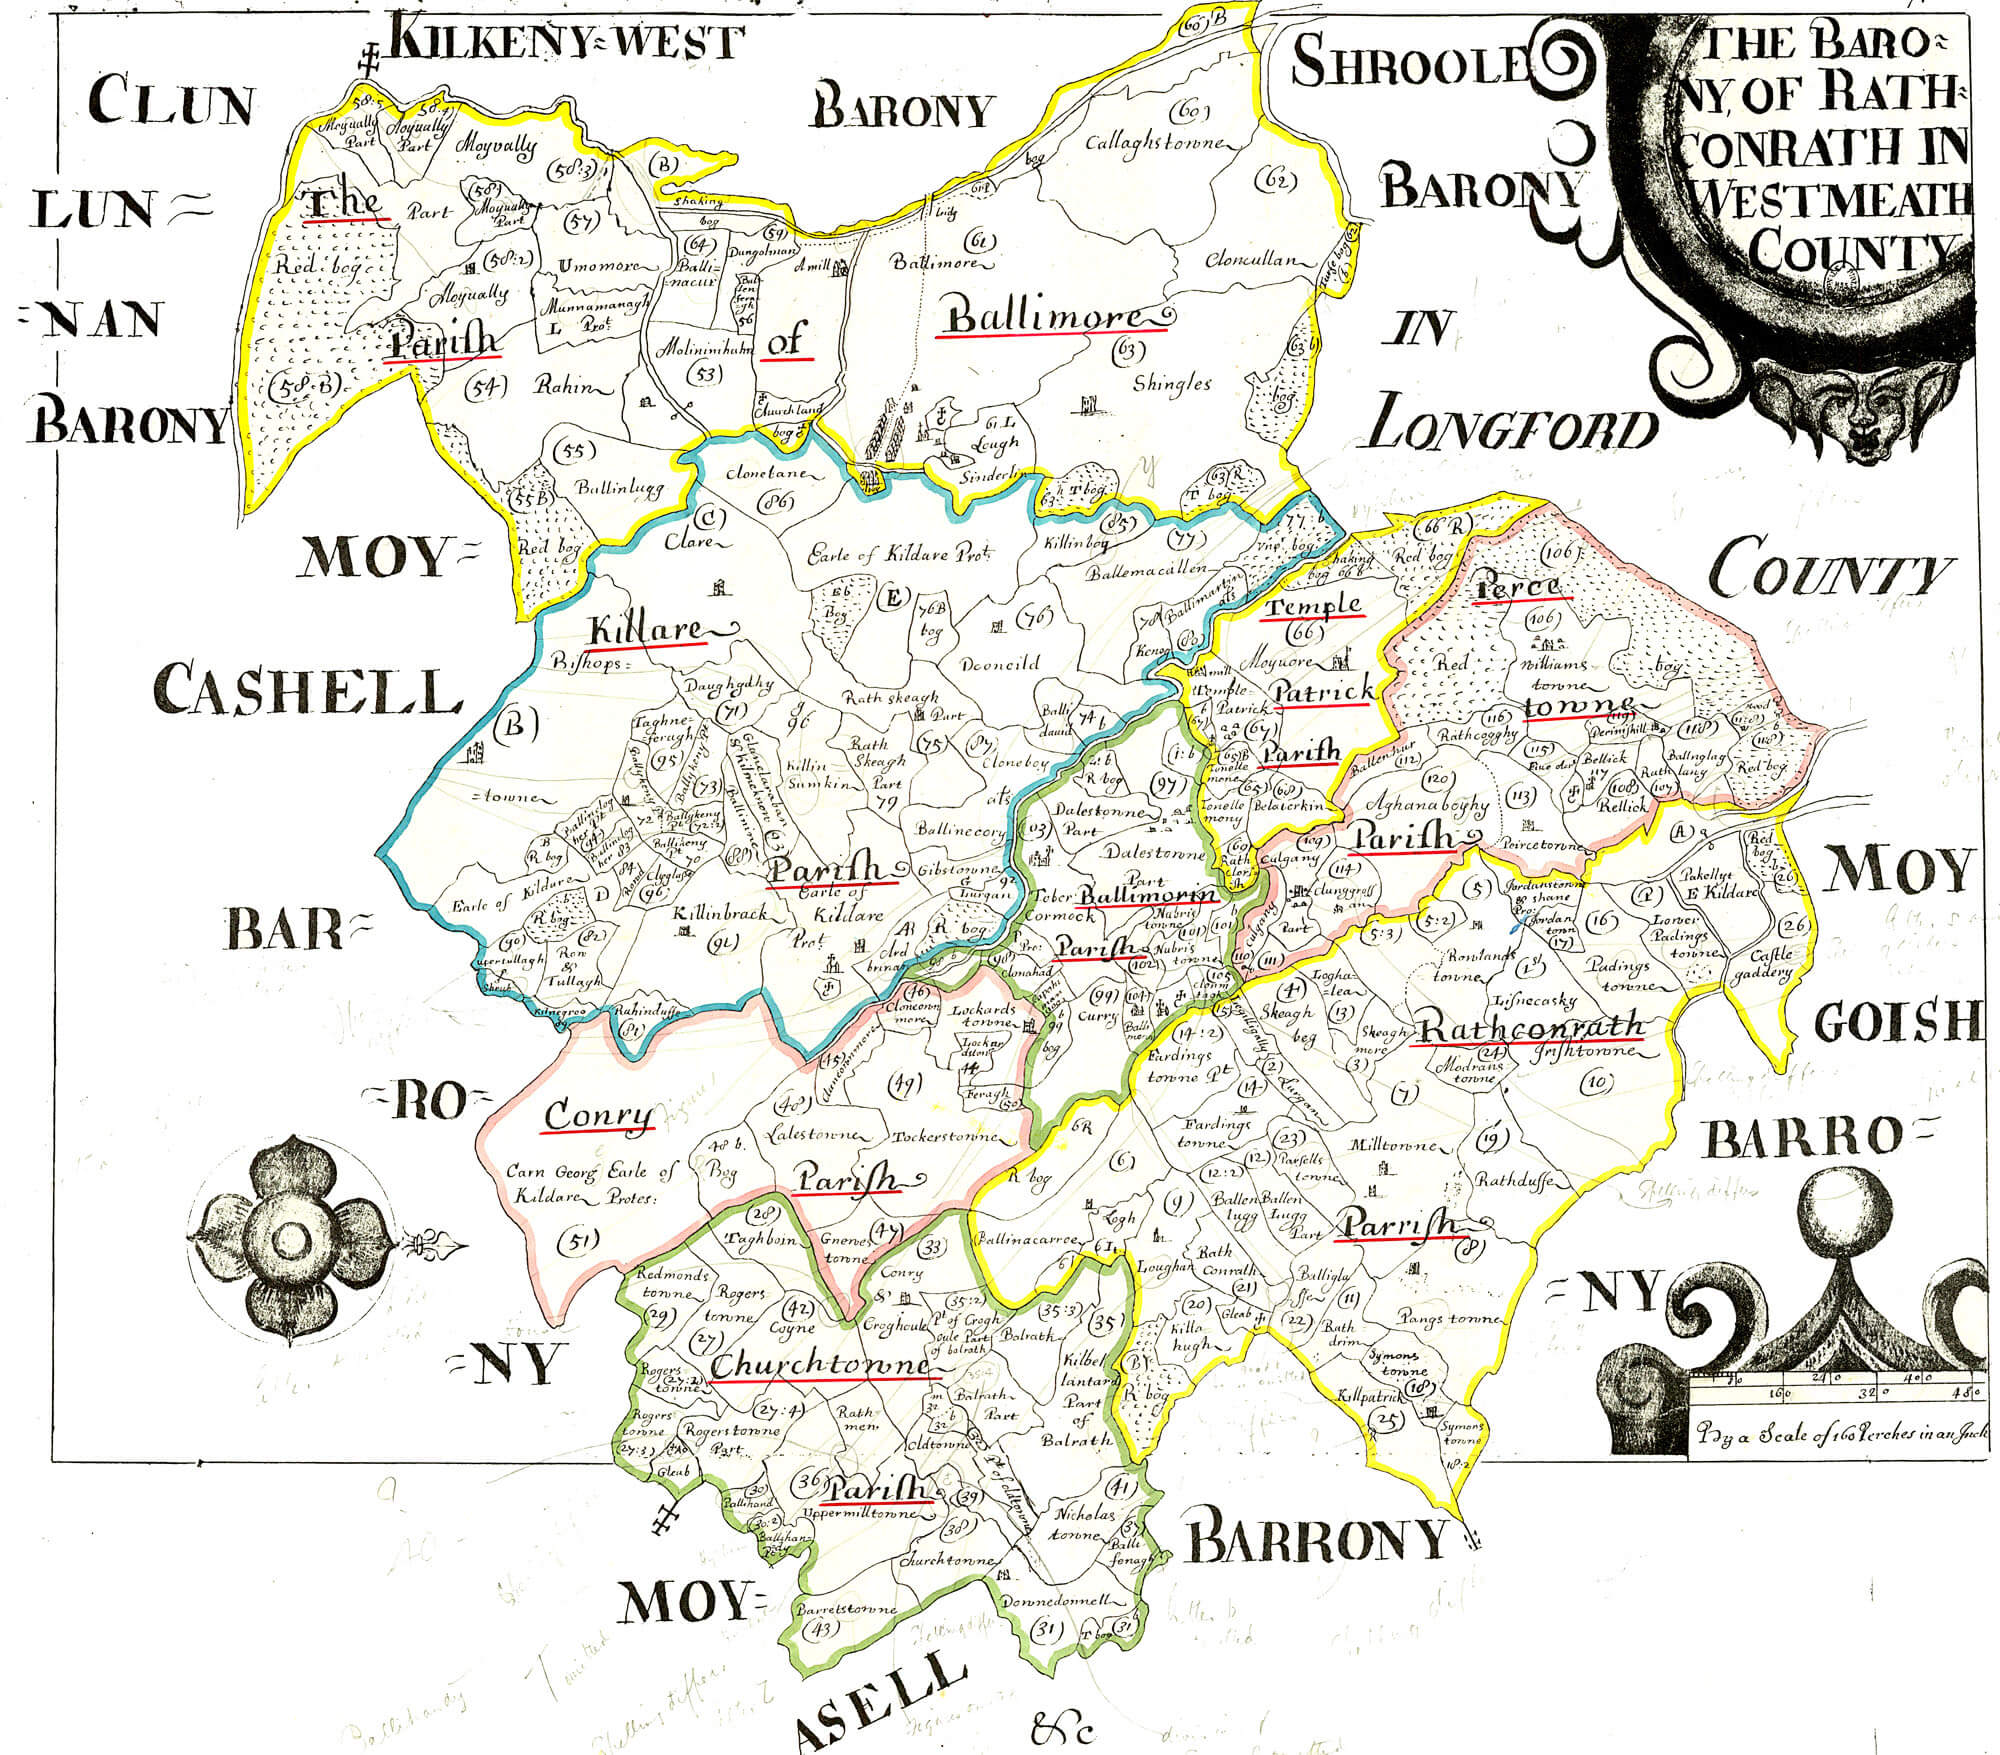 Westmeath Ireland Map.Ireland Barony Maps County Westmeath L Brown Collection